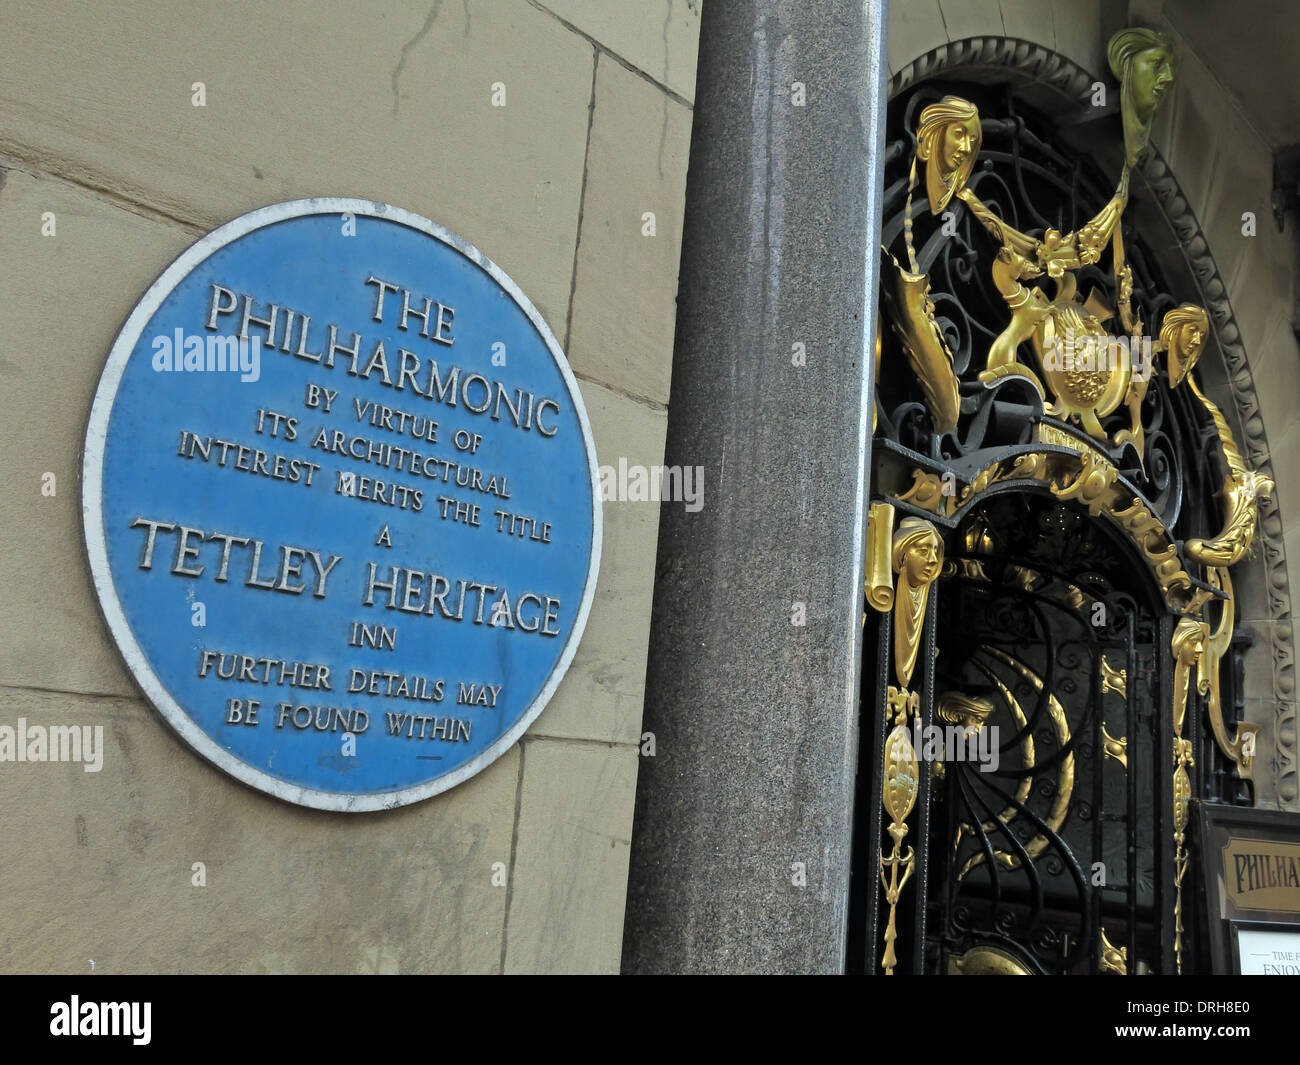 Entrance to the Philharmonic Dining Rooms tavern in Gold Liverpool maritime  England UK   Blue Heritage Plaque. Entrance to the Philharmonic Dining Rooms tavern in Gold Liverpool